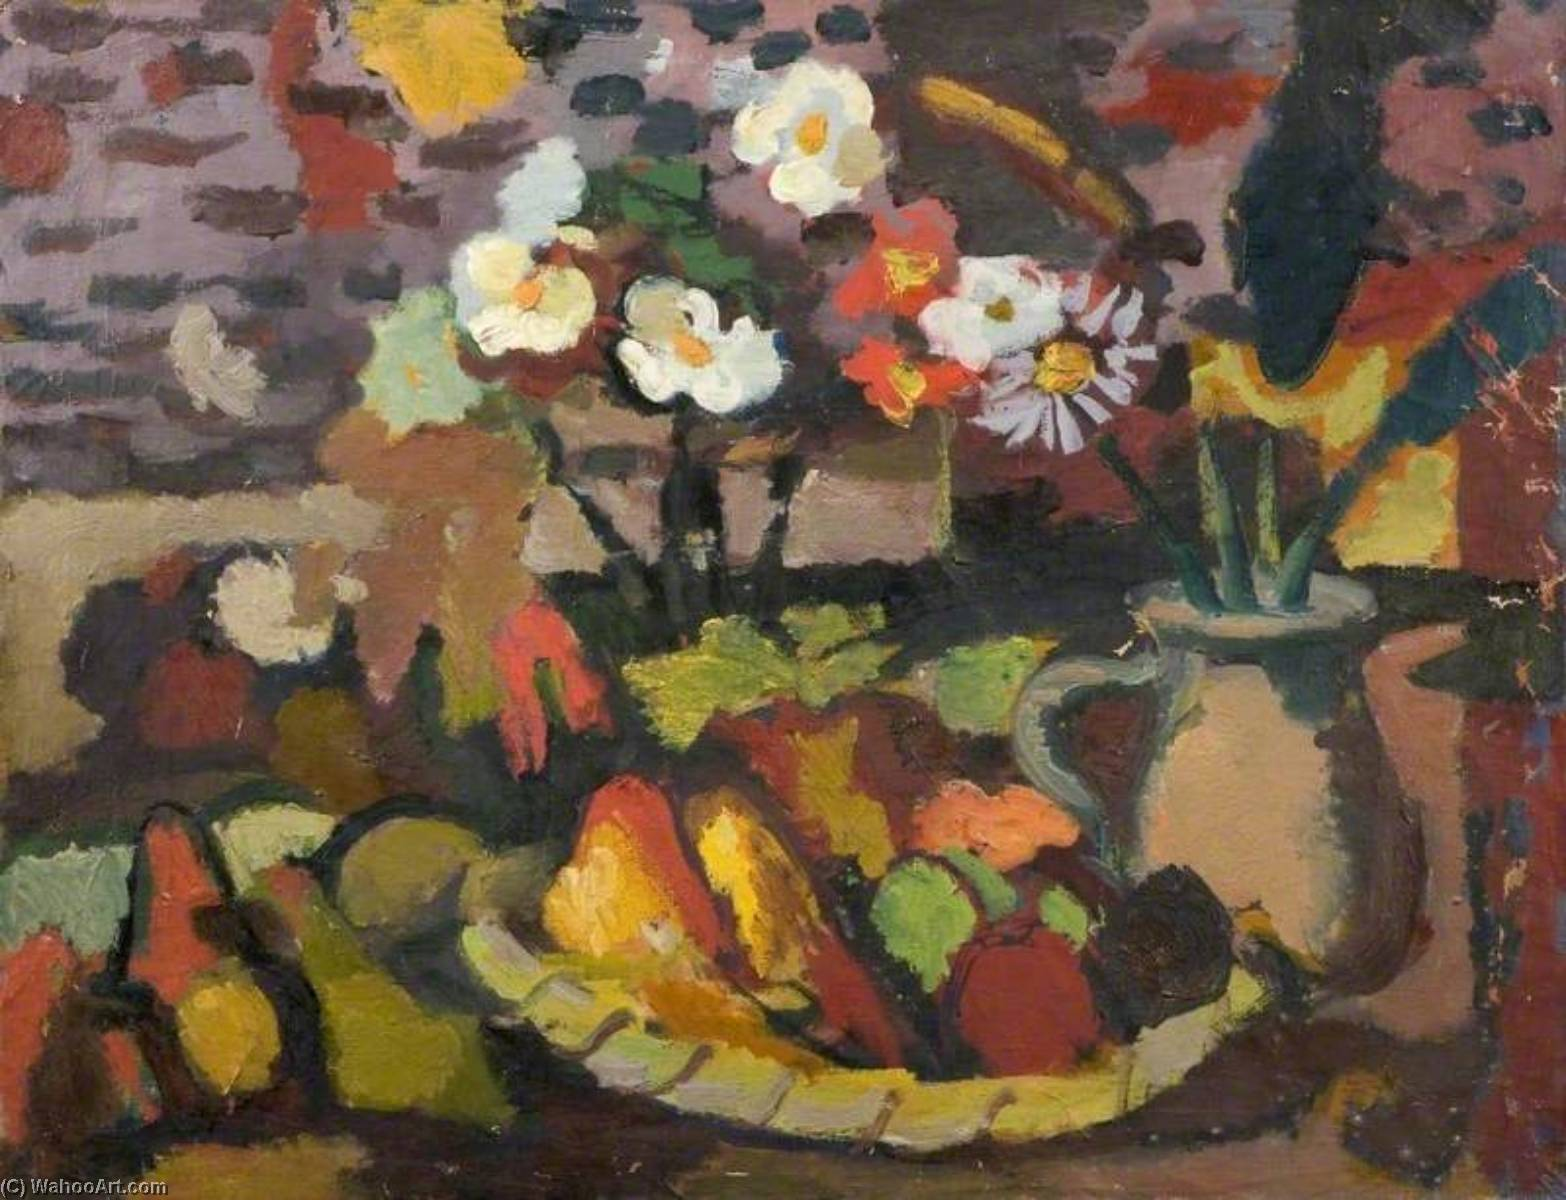 Still Life with a Fruit Bowl and a Jug with Flowers, Oil On Canvas by Theodor Kern